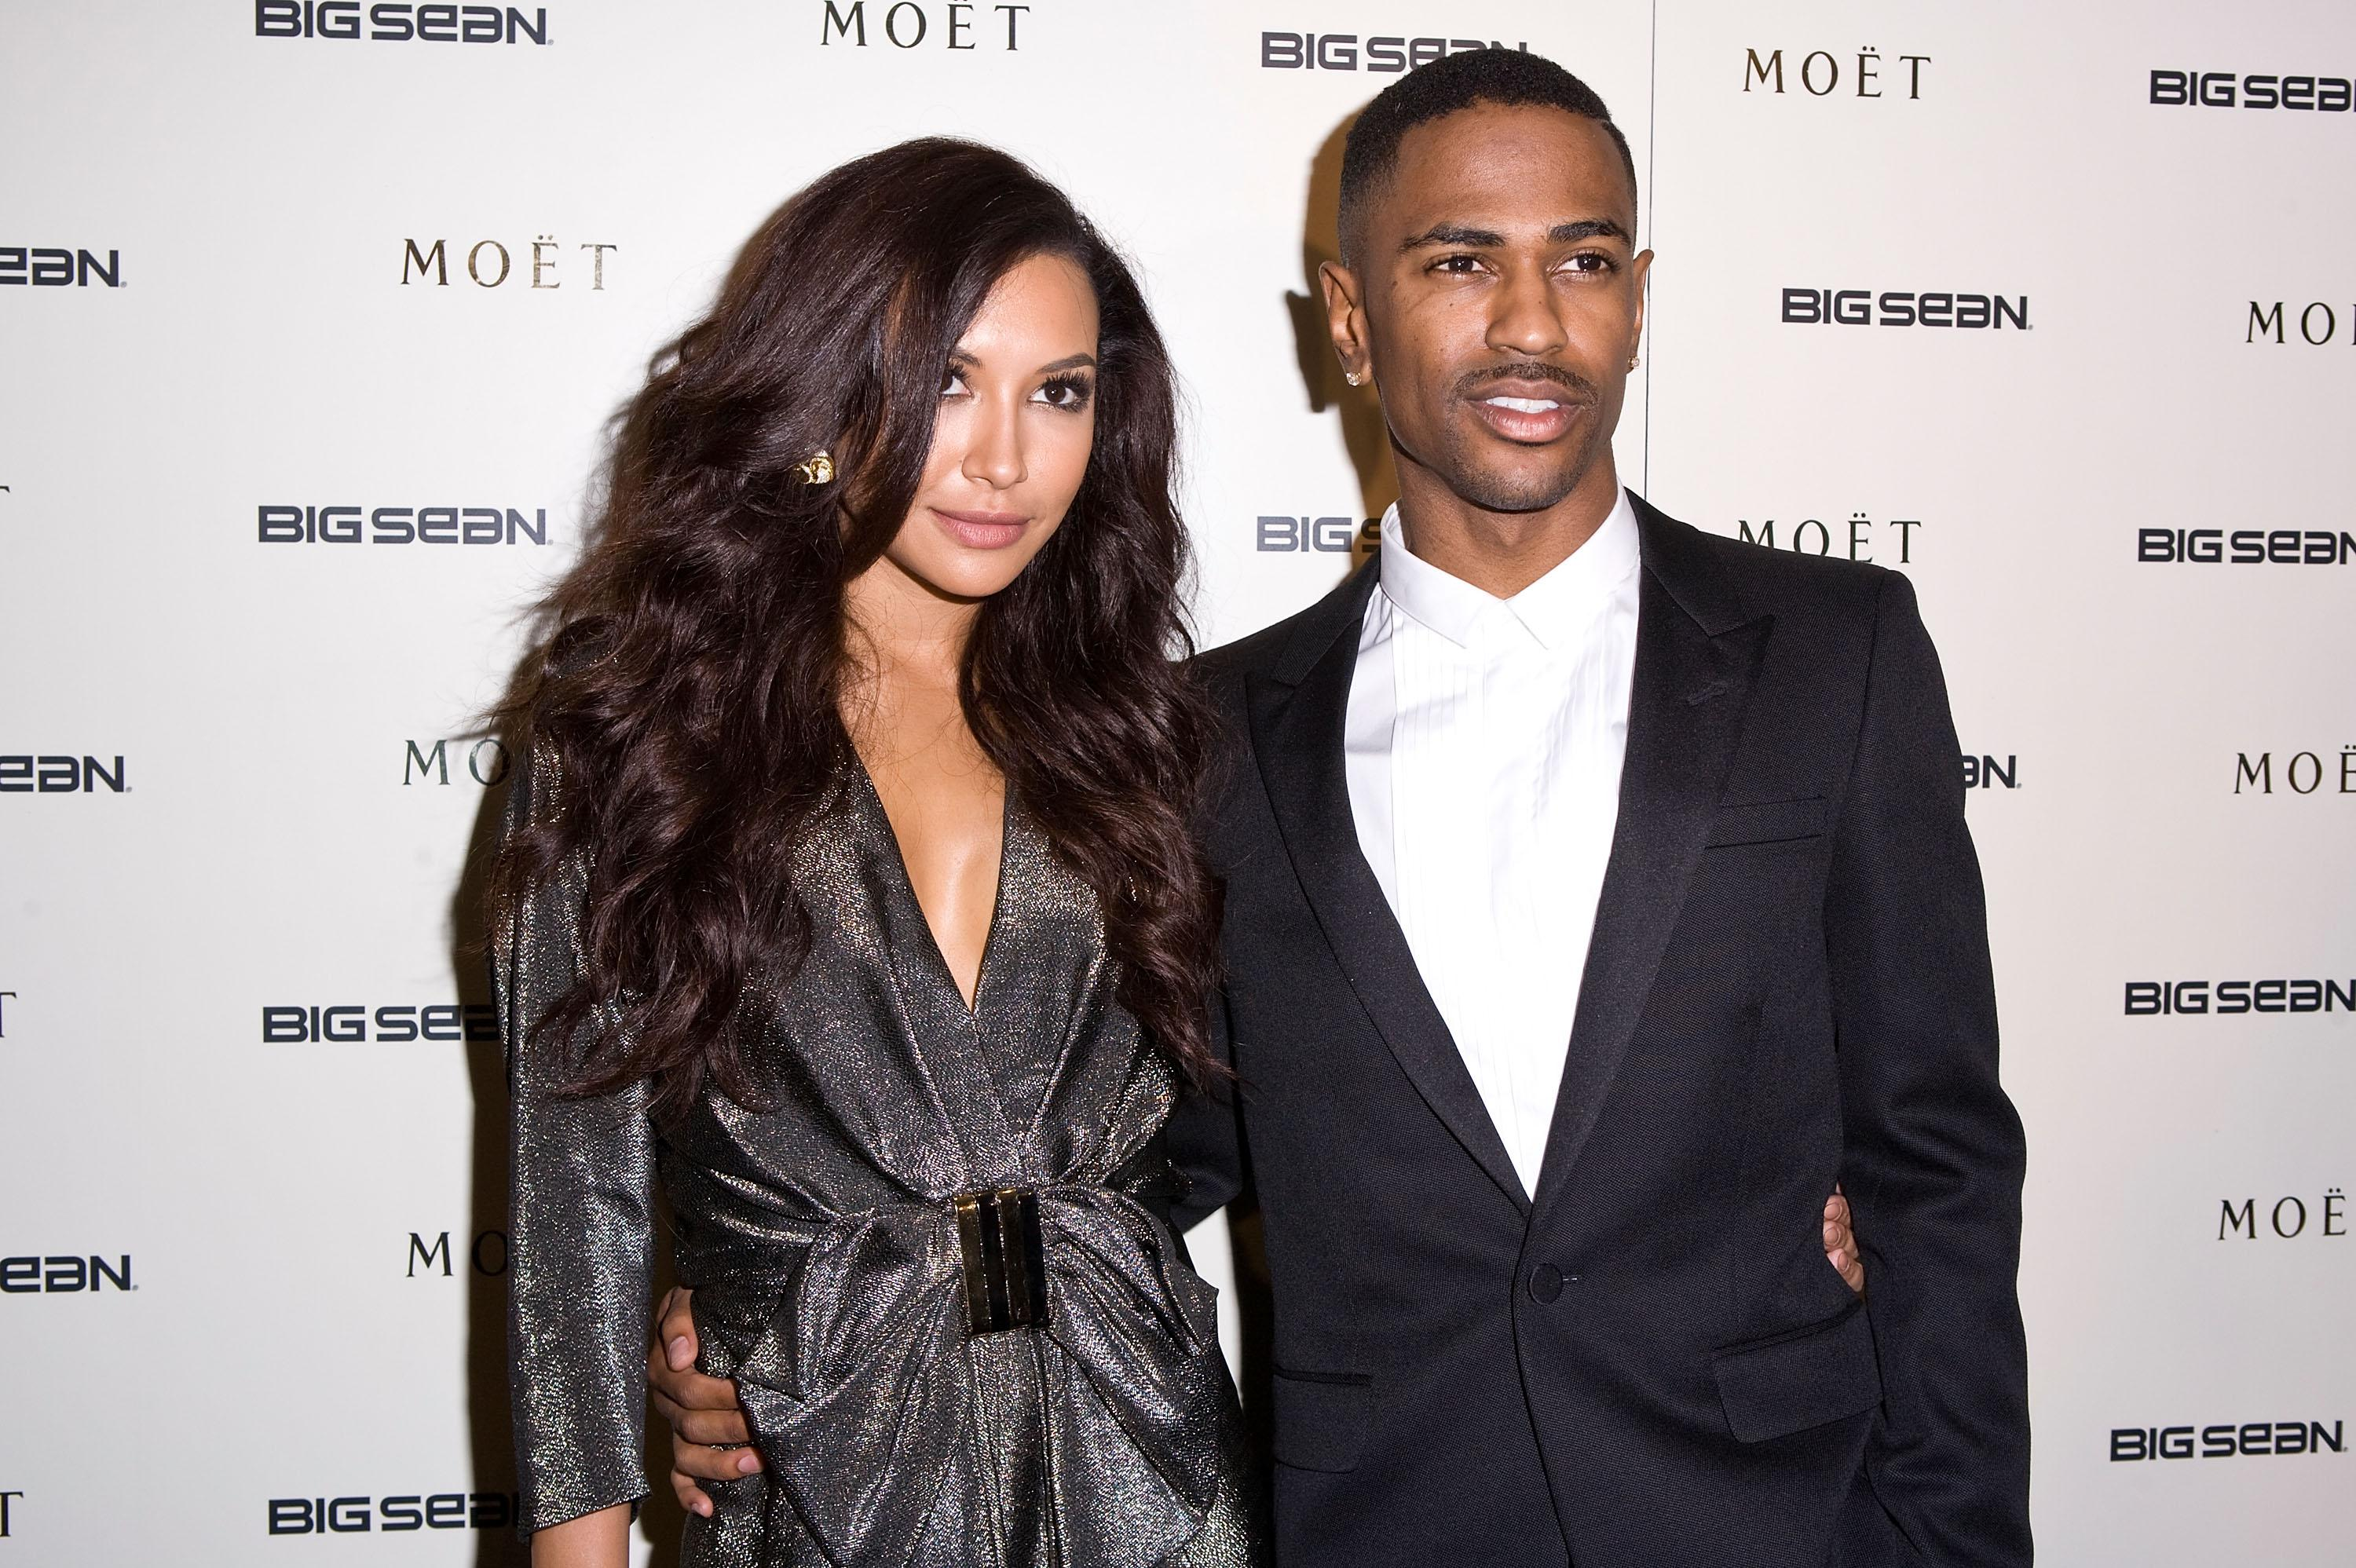 Moet & Chandon 2013 Rose Lounge Series Private Listening Party For Big Sean's New Album 'Hall Of Fame' - Arrivals